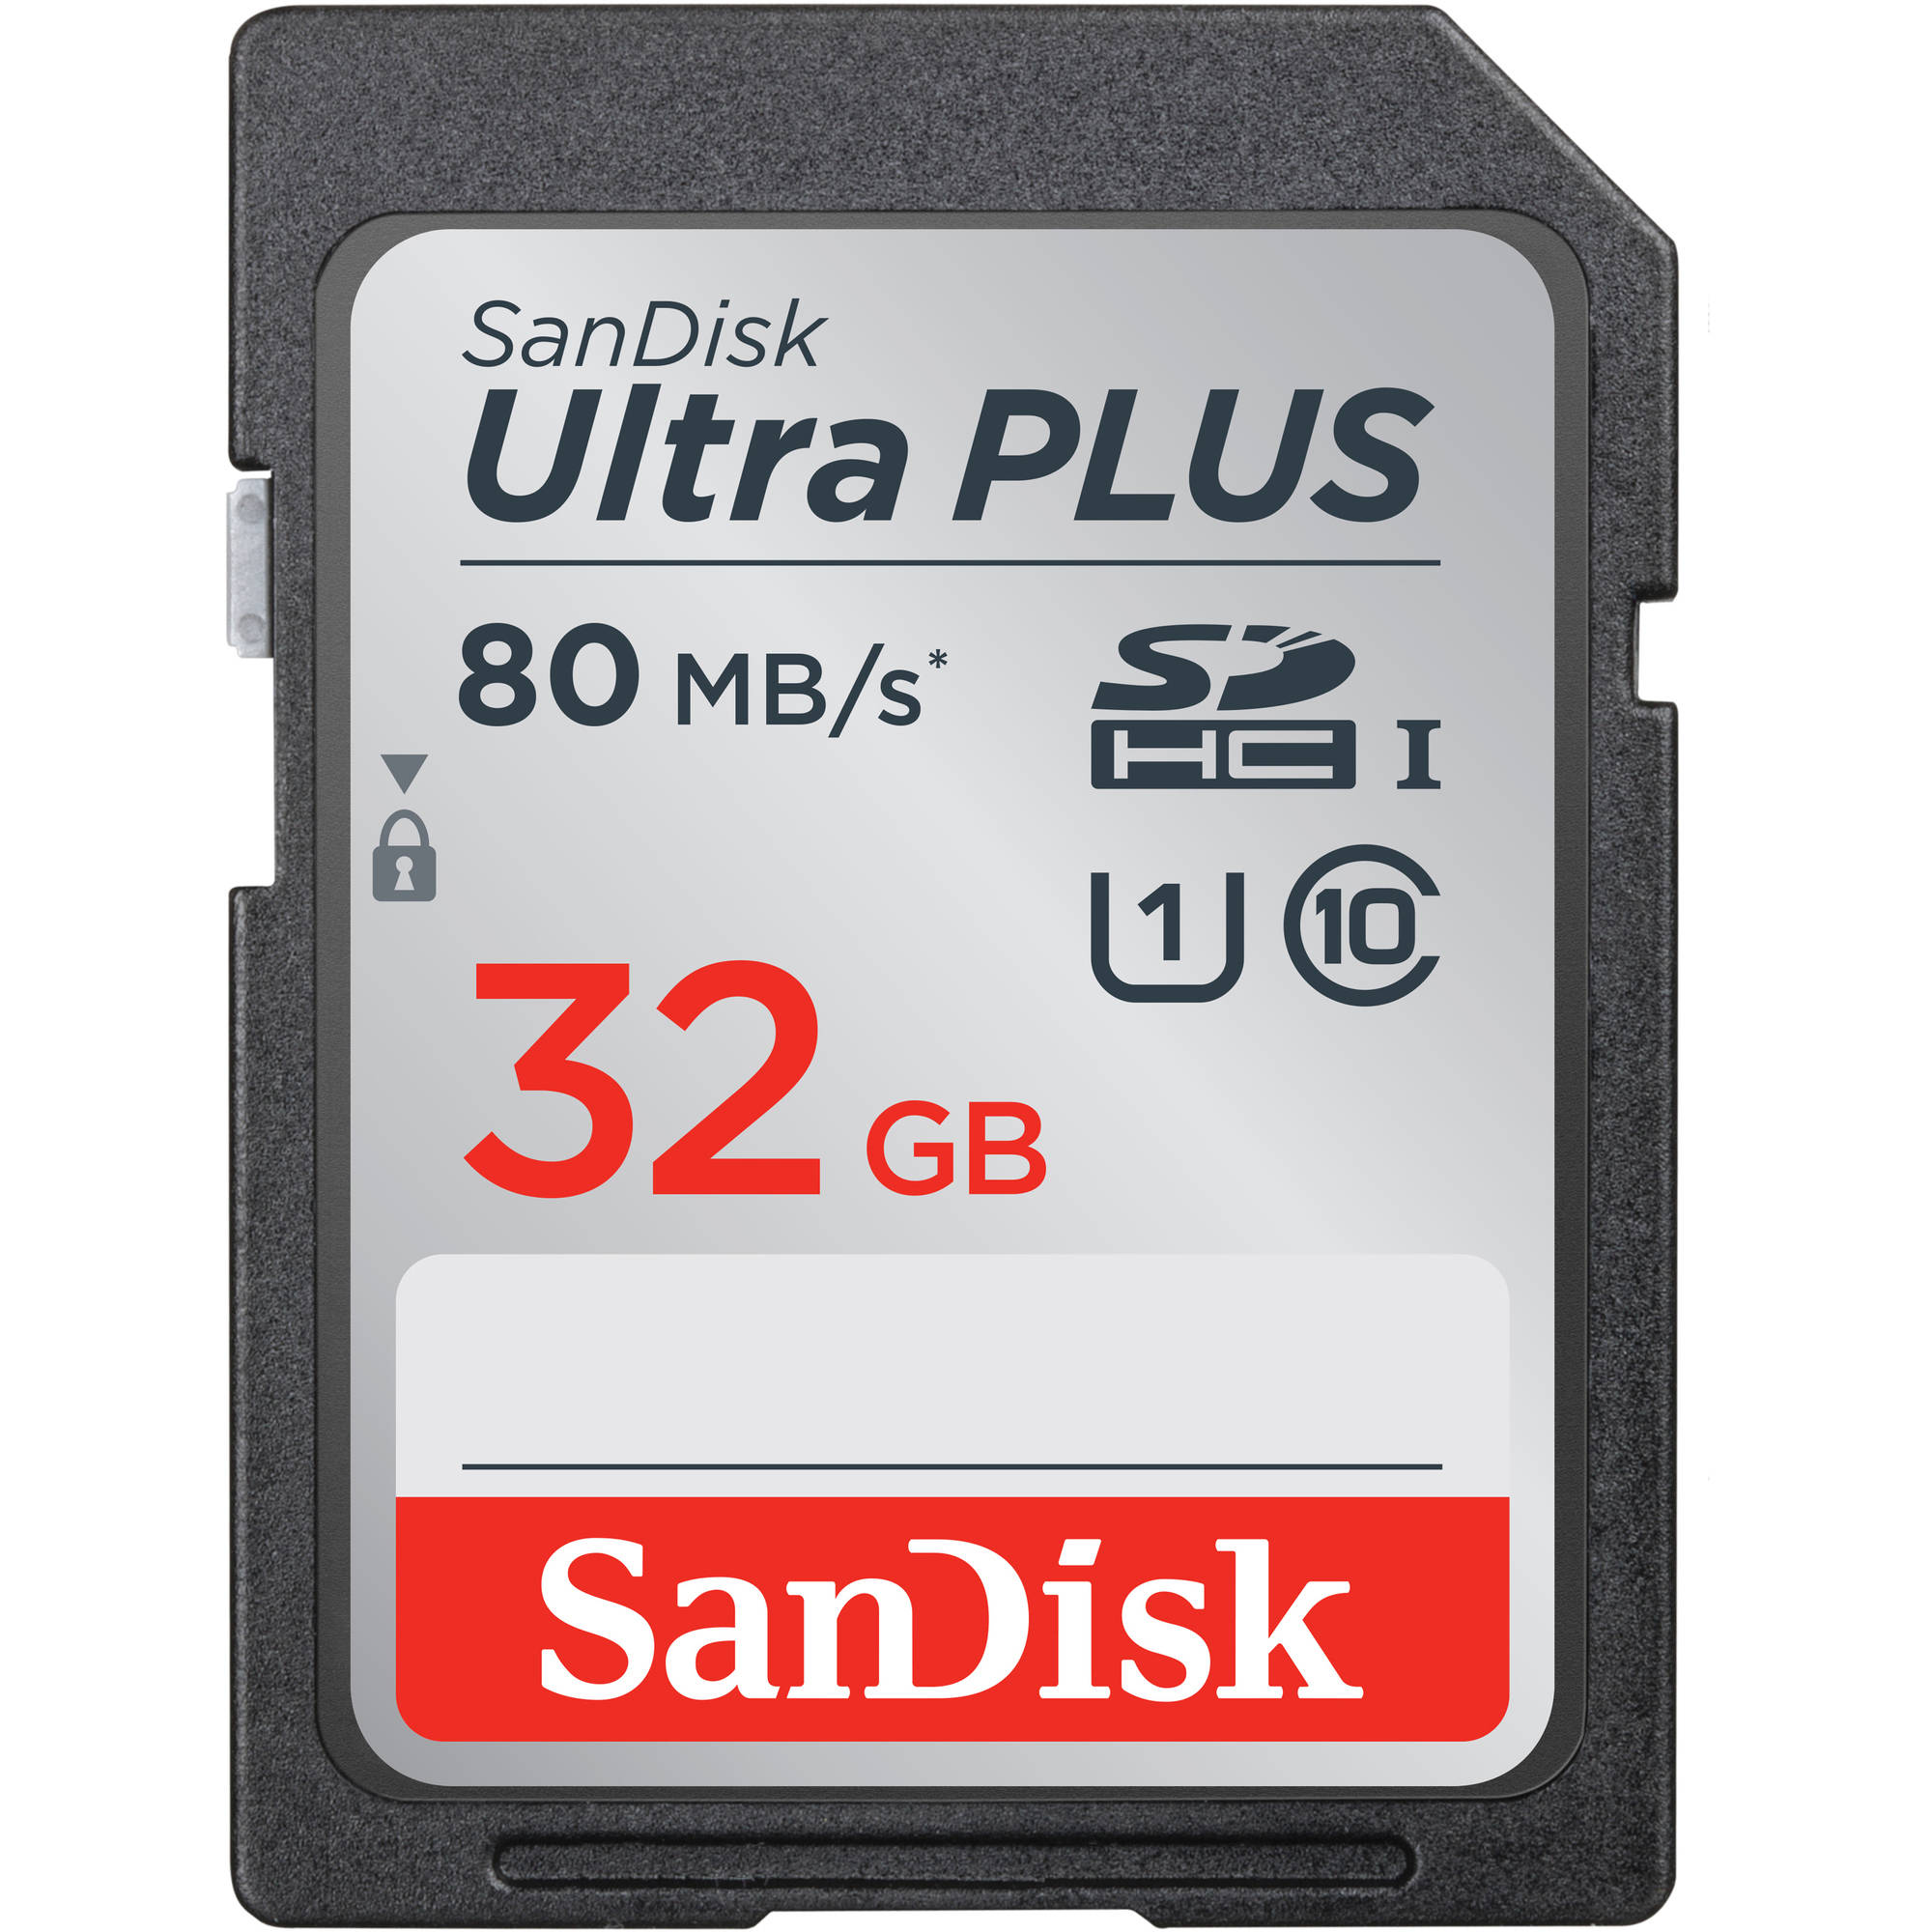 SanDisk Ultra PLUS UHS-1 32GB SD Card, Class 10